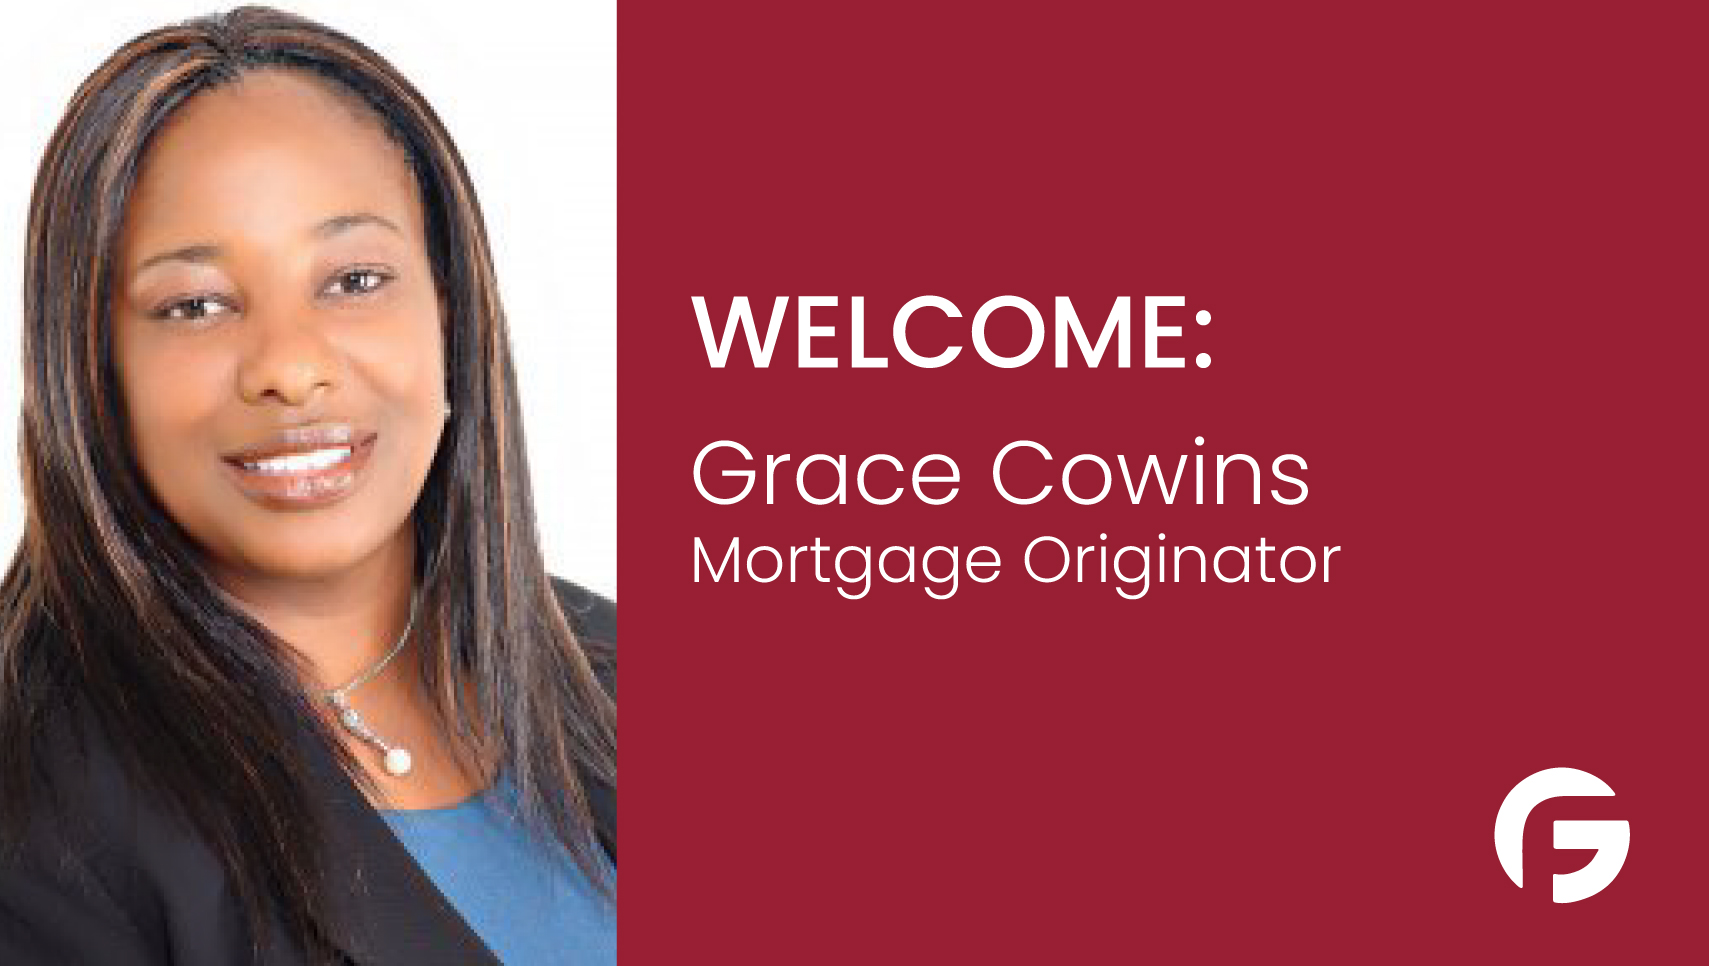 Grace Cowins Loan Originator, Atlanta Georgia